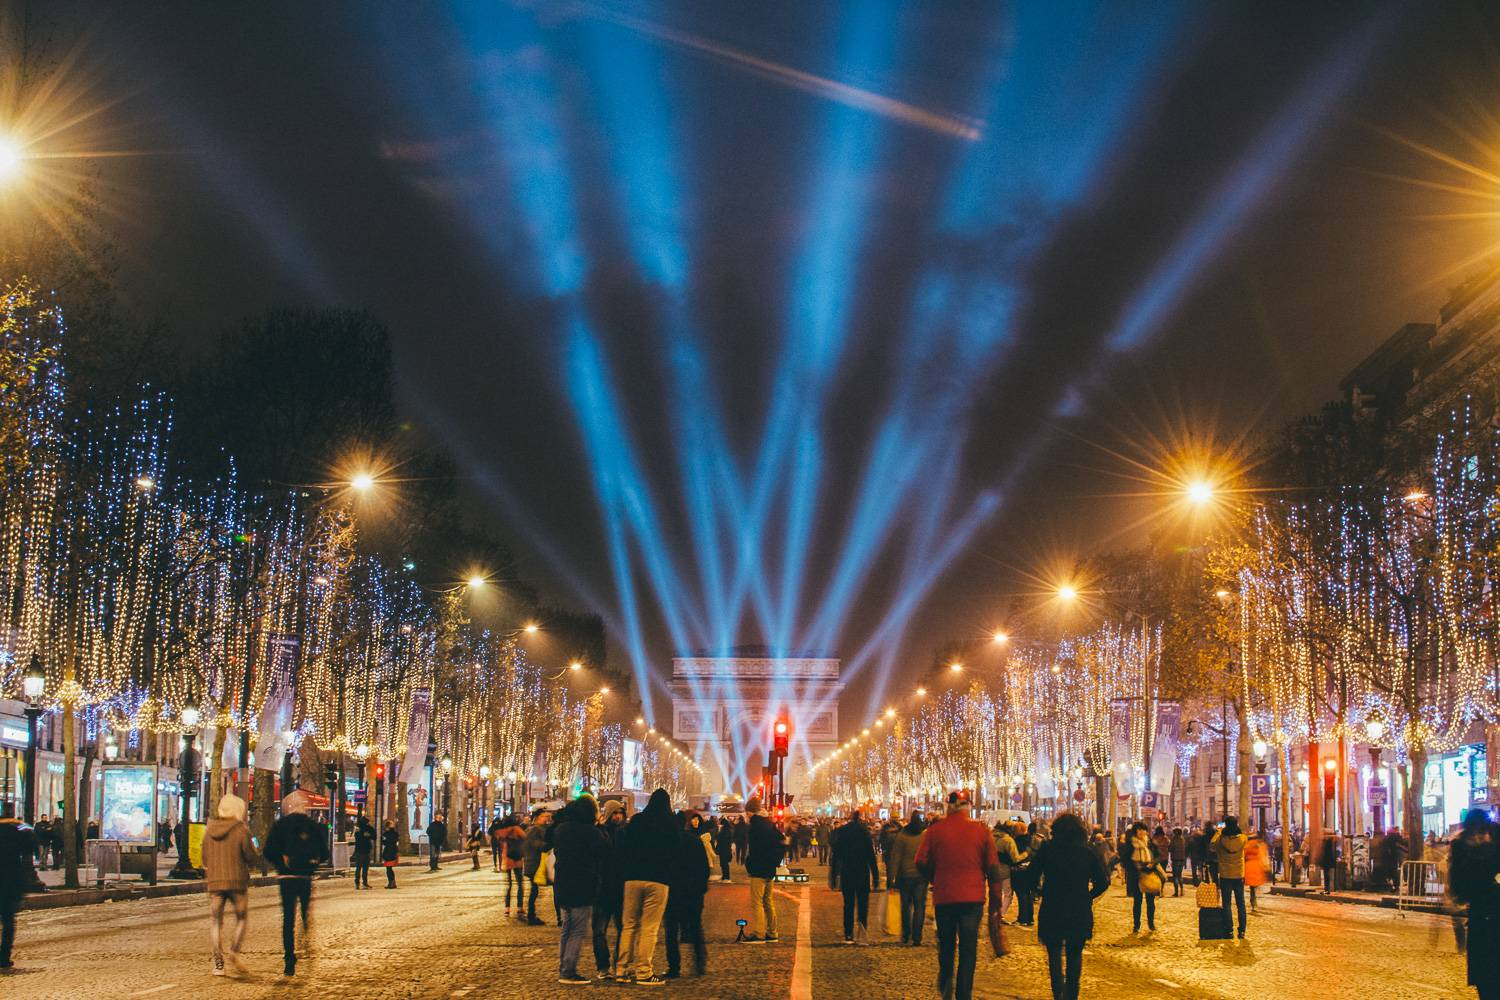 Image of the Champs Élysées light show in Paris and people walking towards it.